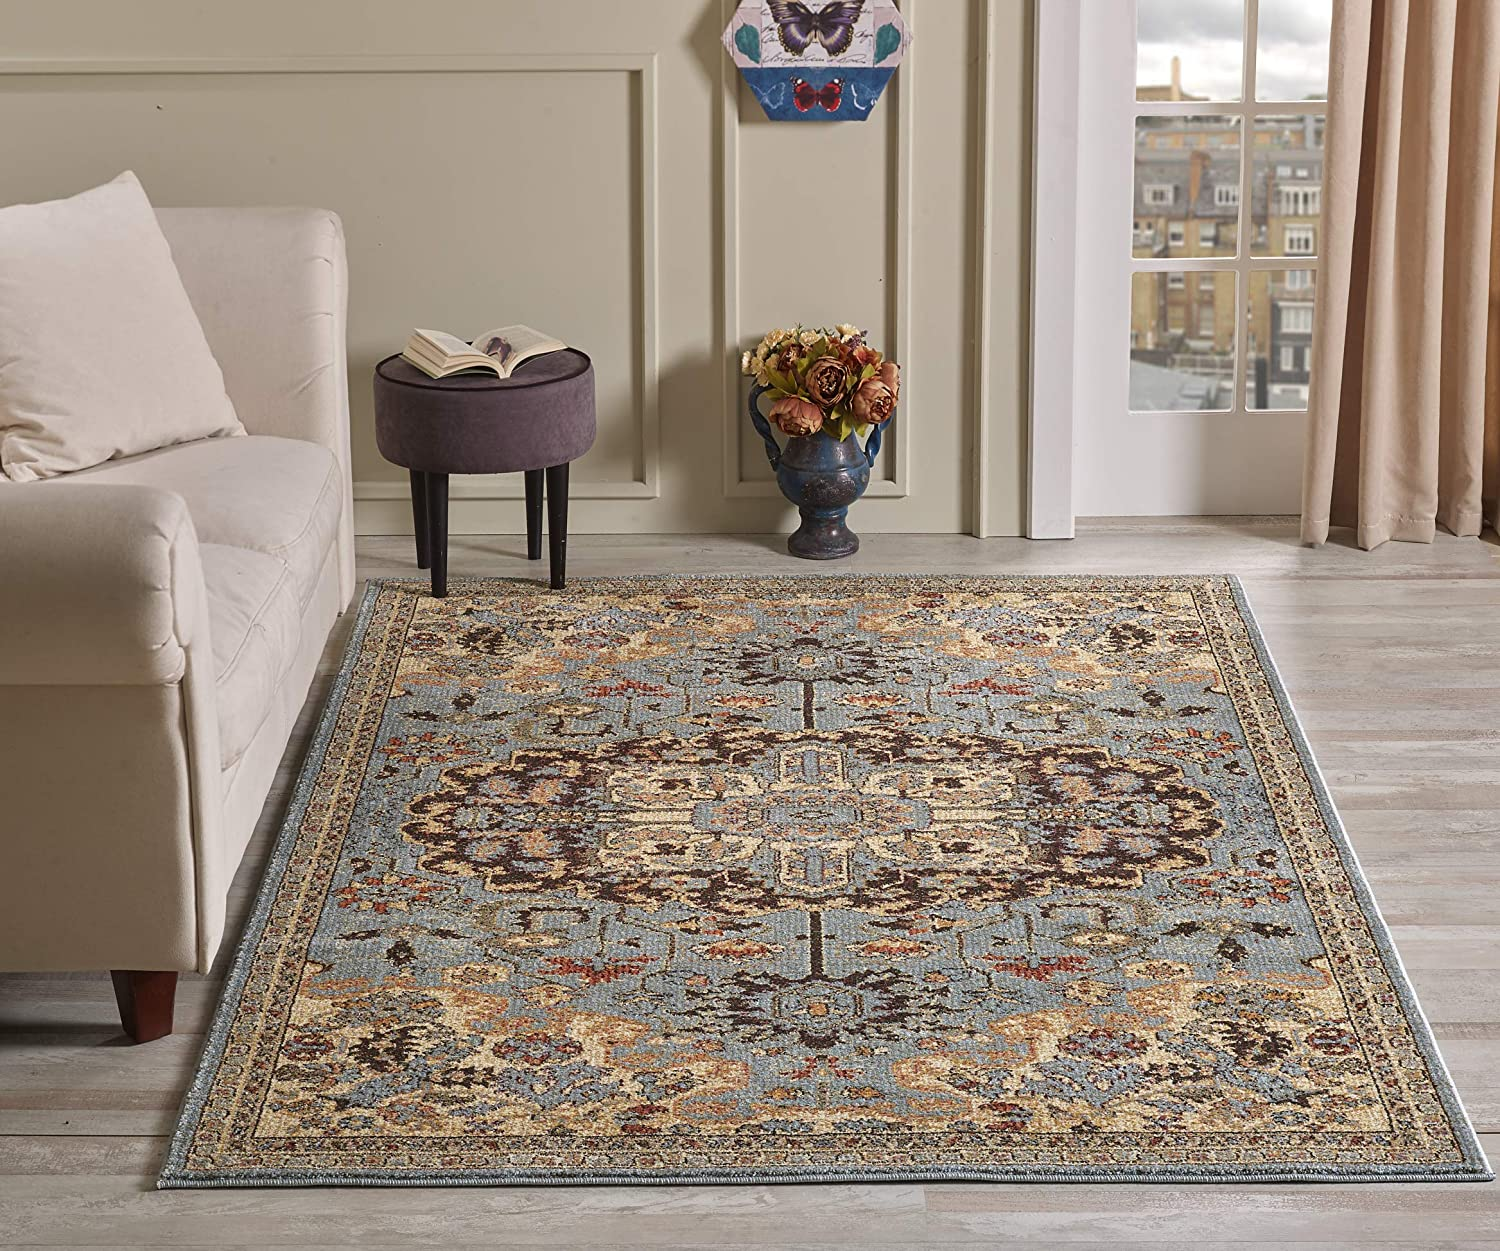 Golden Rugs Gabbeh Collection Persian Area Rug 8x10 Blue Medallion Hand Touch Vintage Traditional Carpet Texture for Bedroom Living Dining Room 7254 (8x10, Blue)